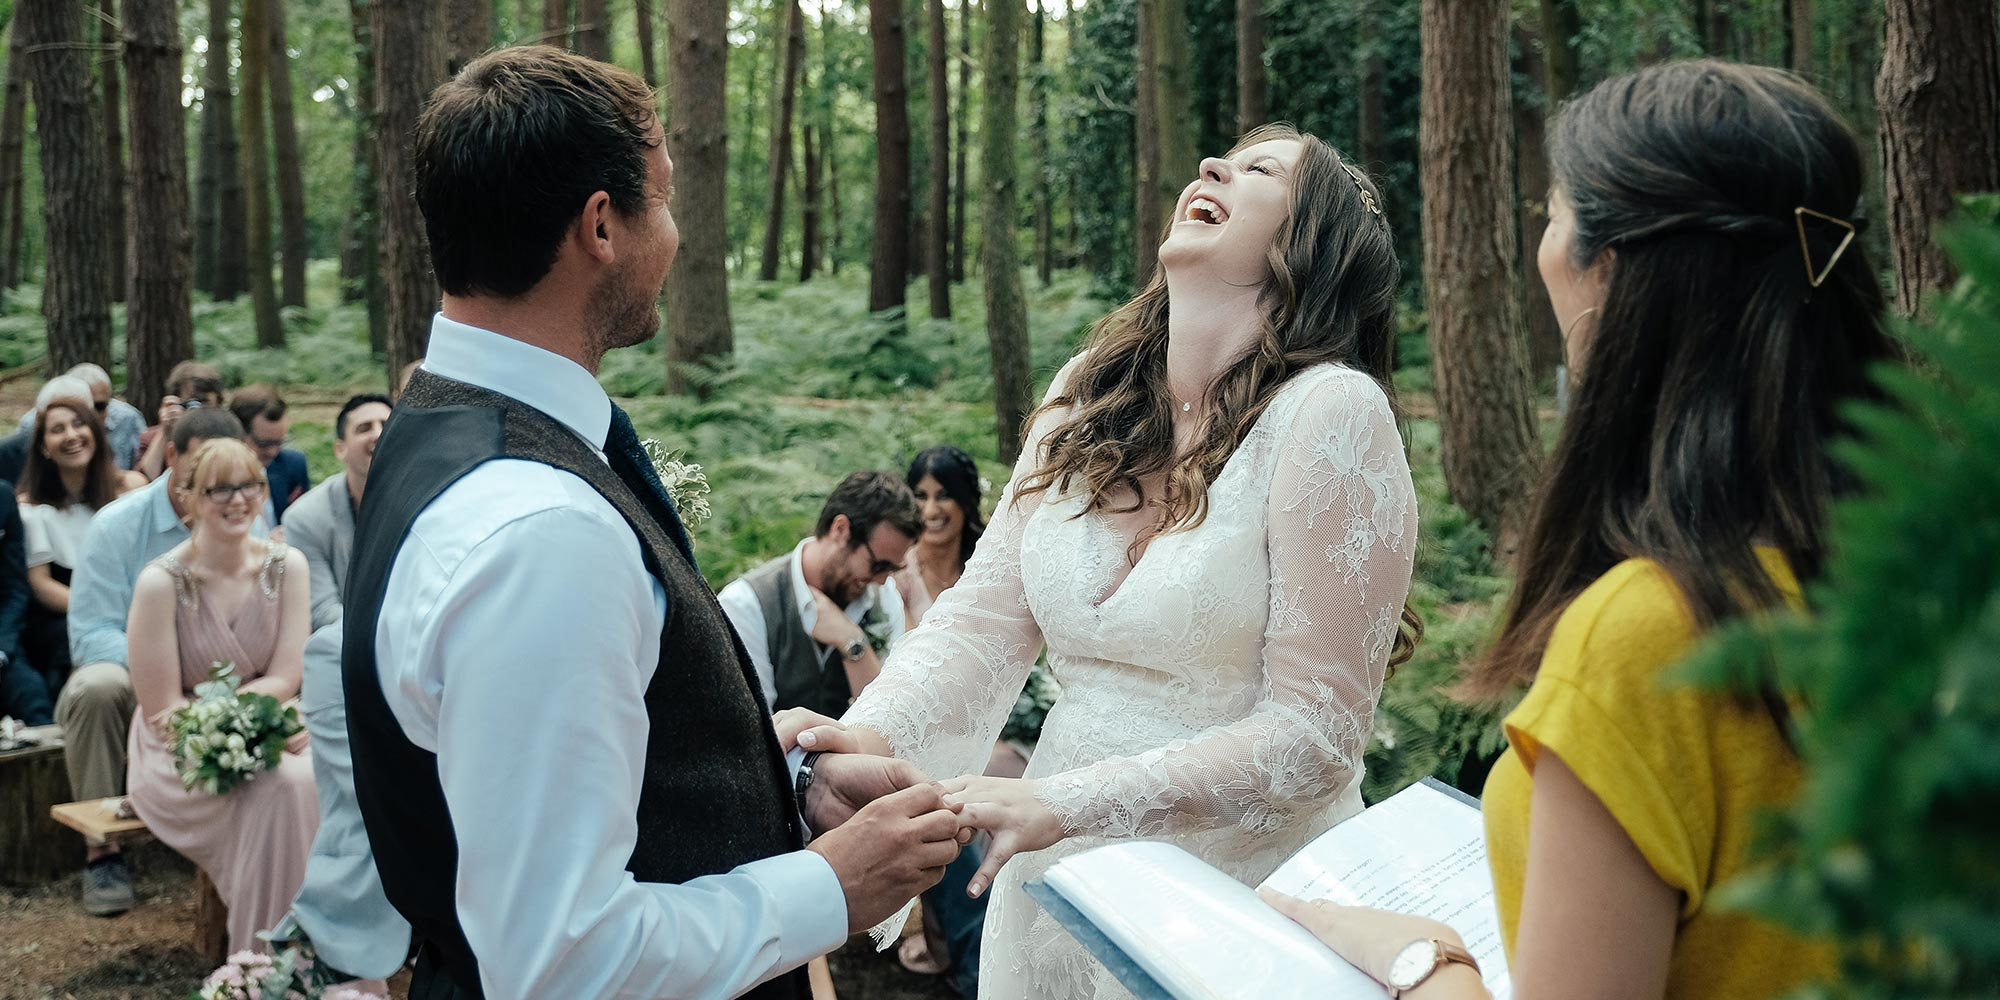 Laughing couple during wedding ceremony | Humanist Wedding Celebrant Laura Gimson